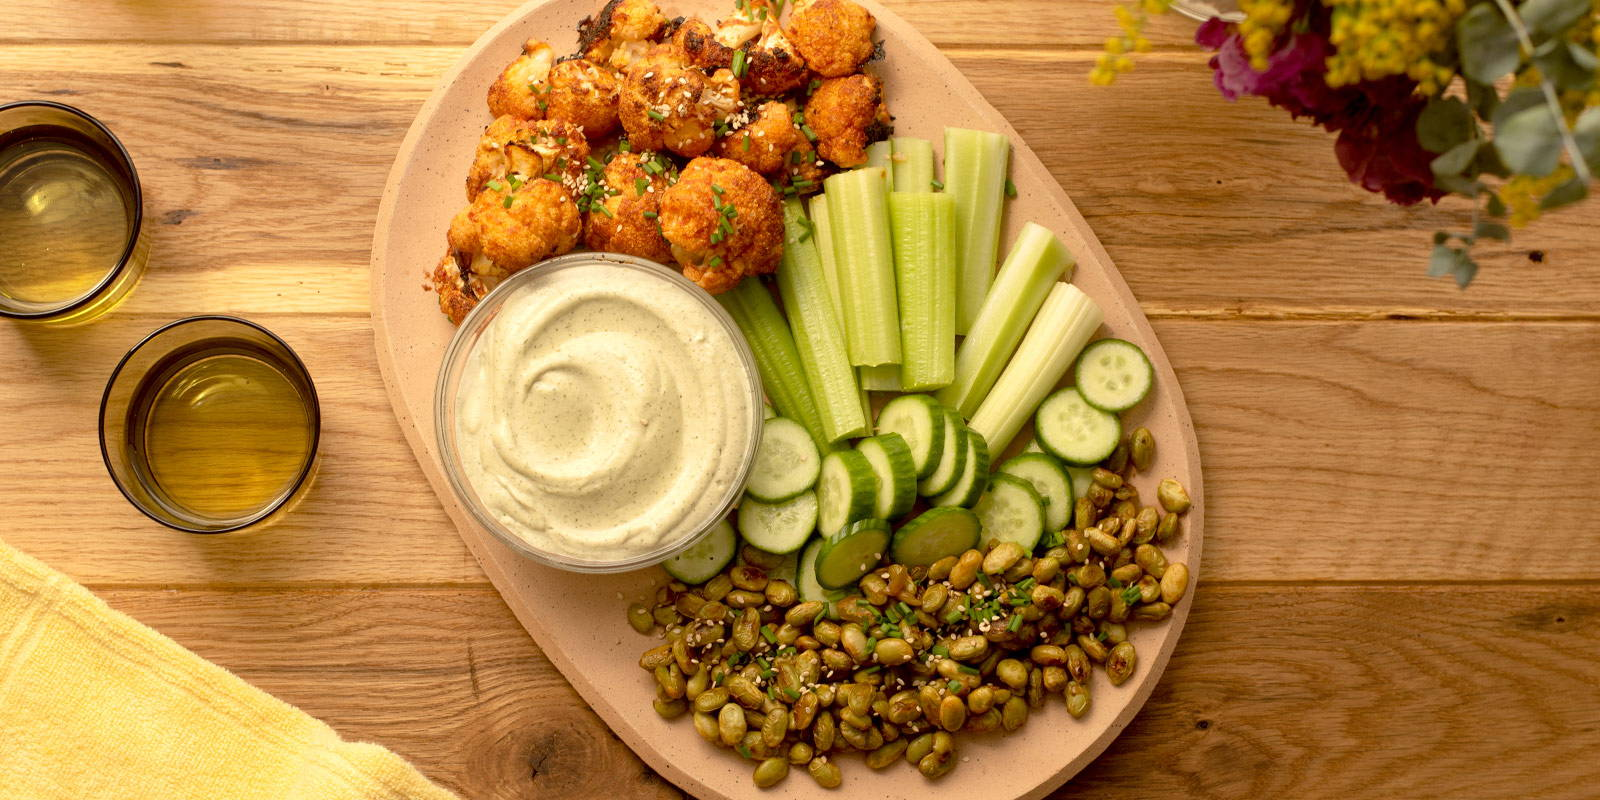 Wooden platter with cauliflower wings, edamame, cashew ranch, celery, and cucumbers.